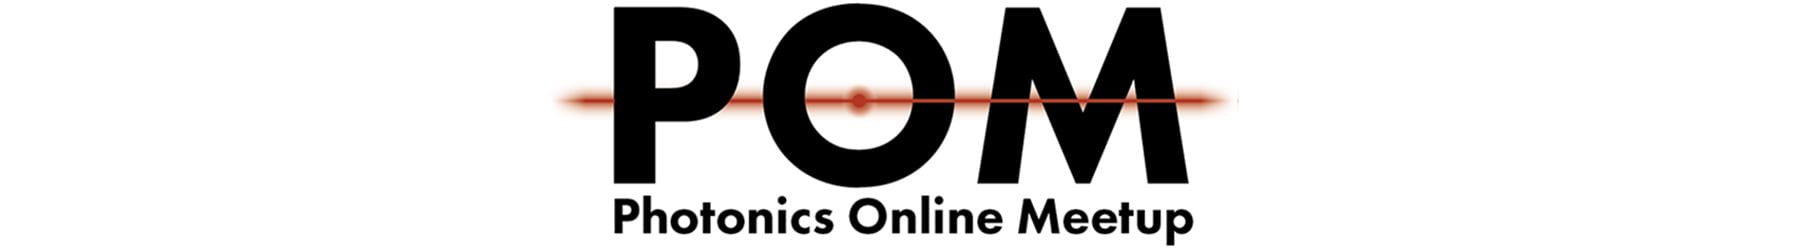 Photonics Online Meetup logo